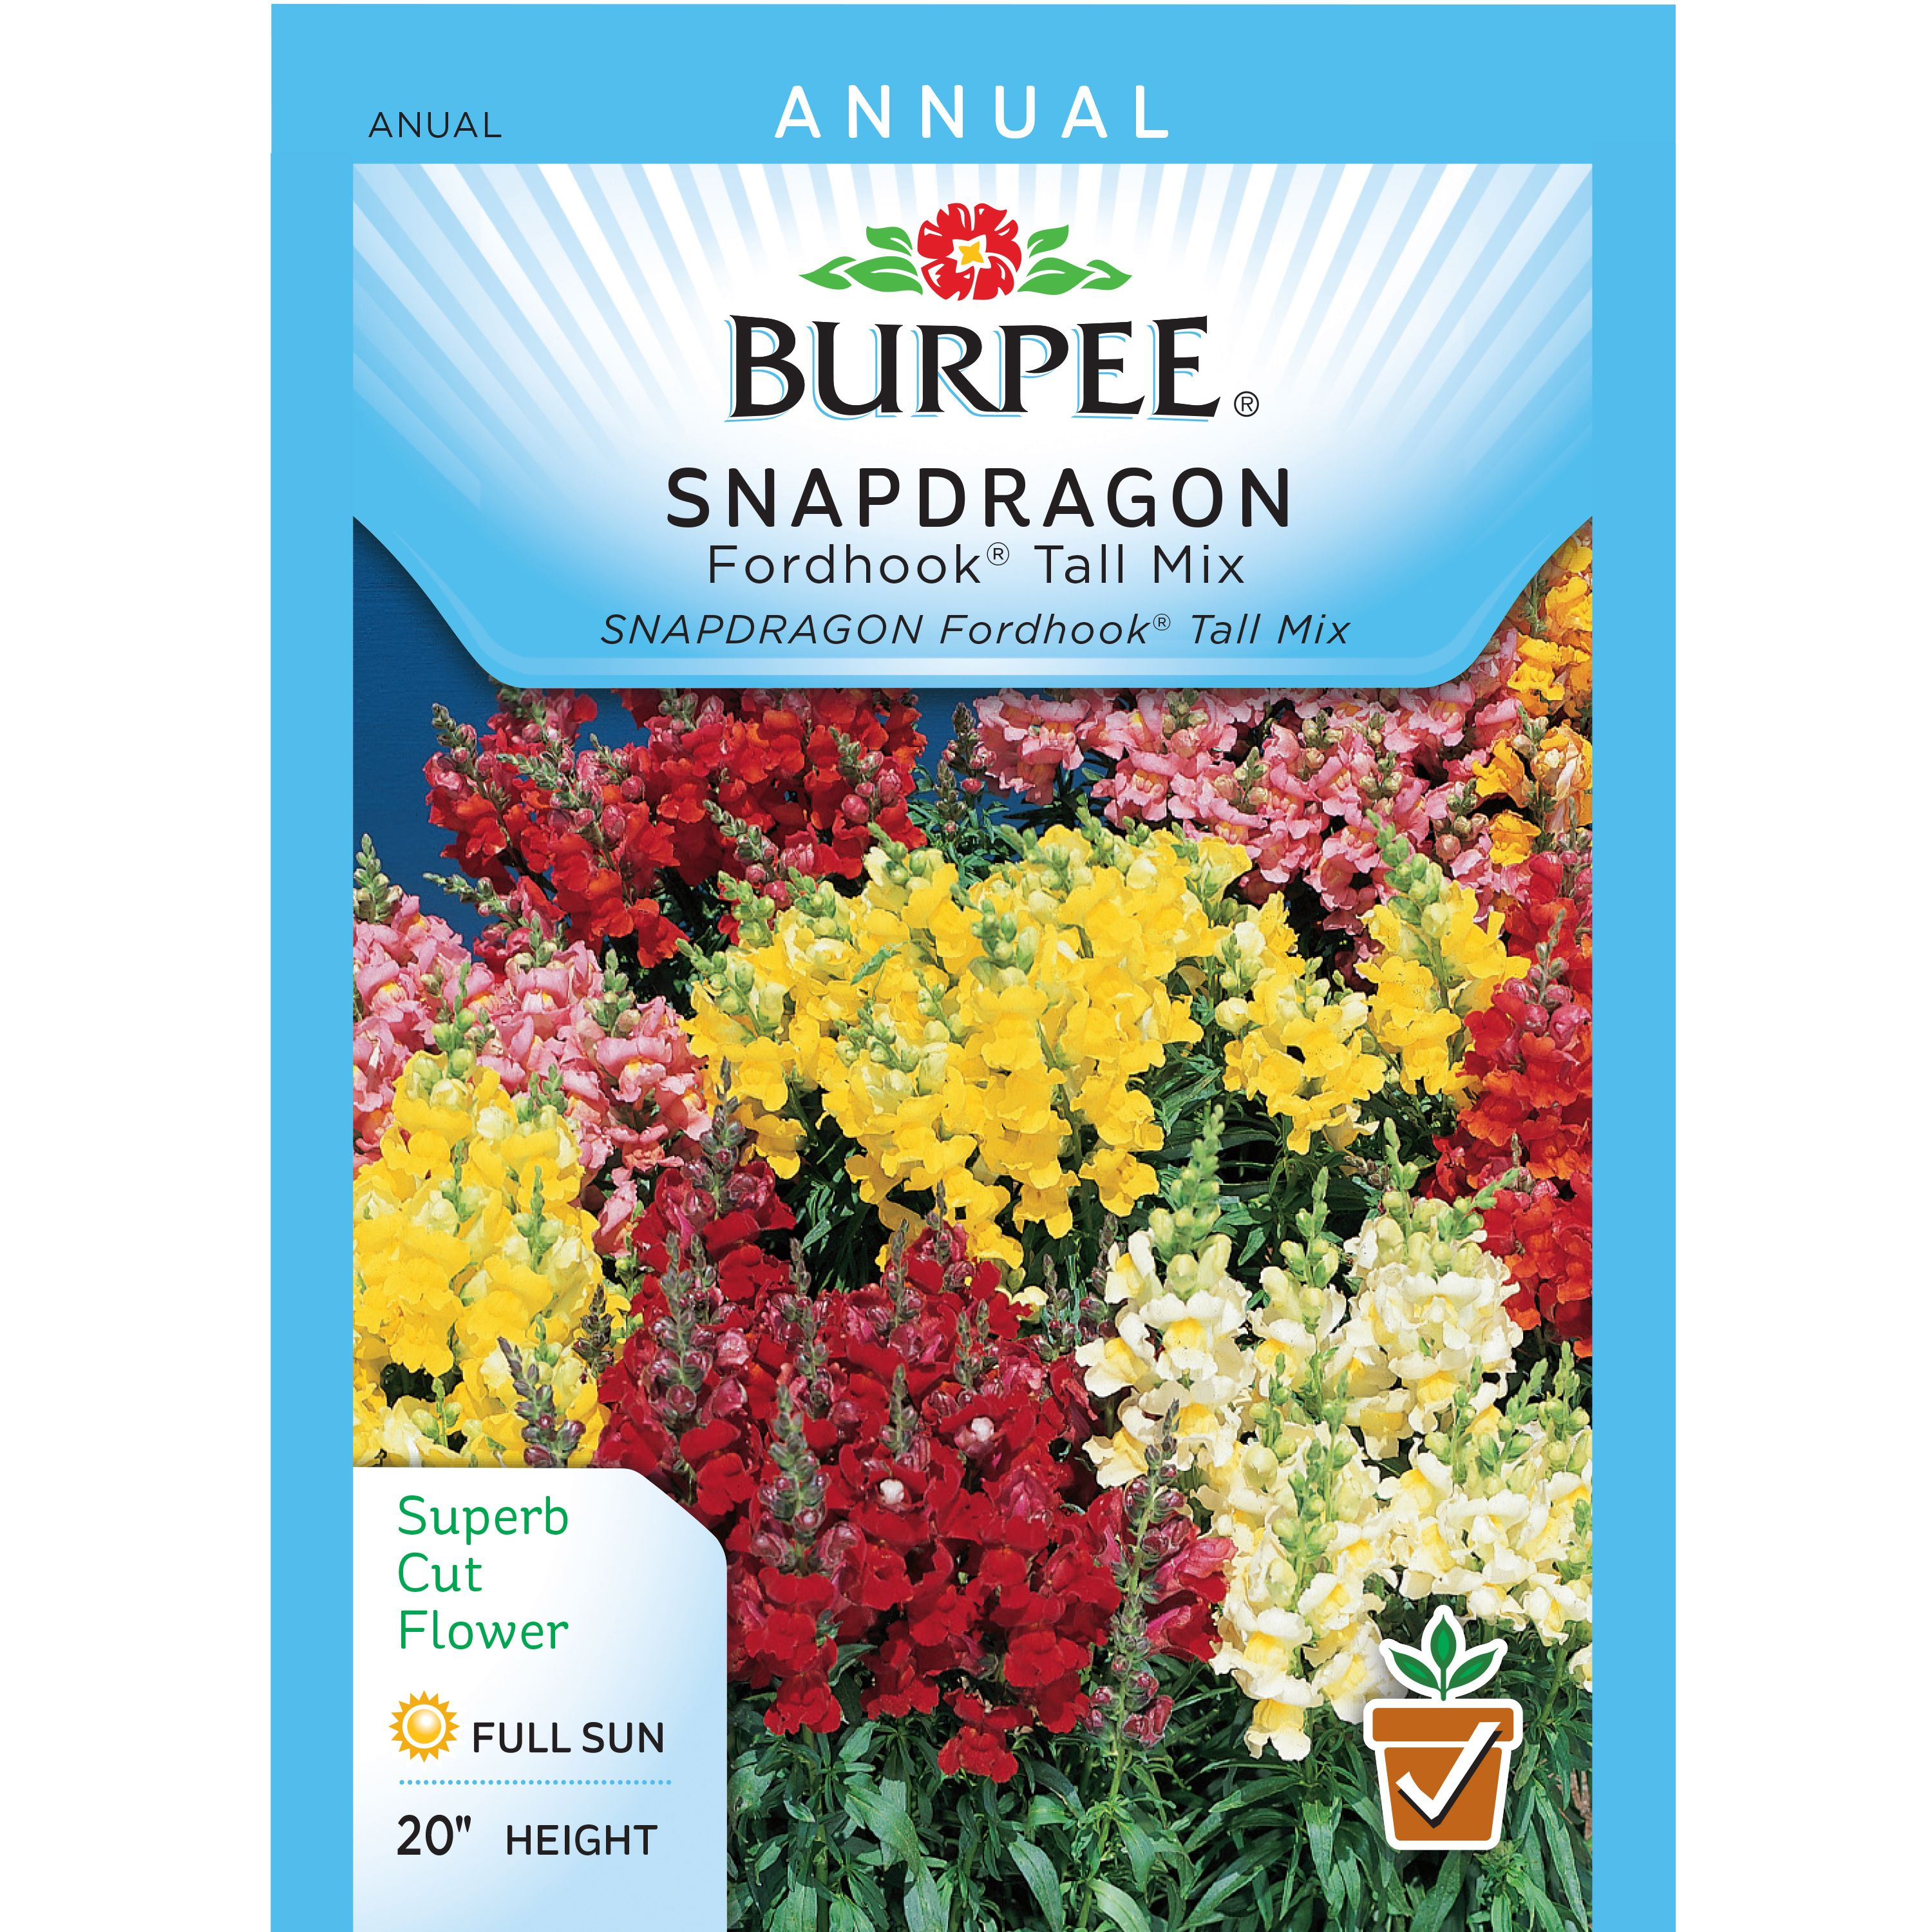 Burpee Snapdragon Fordhook Tall Mix Seed Packet Walmart